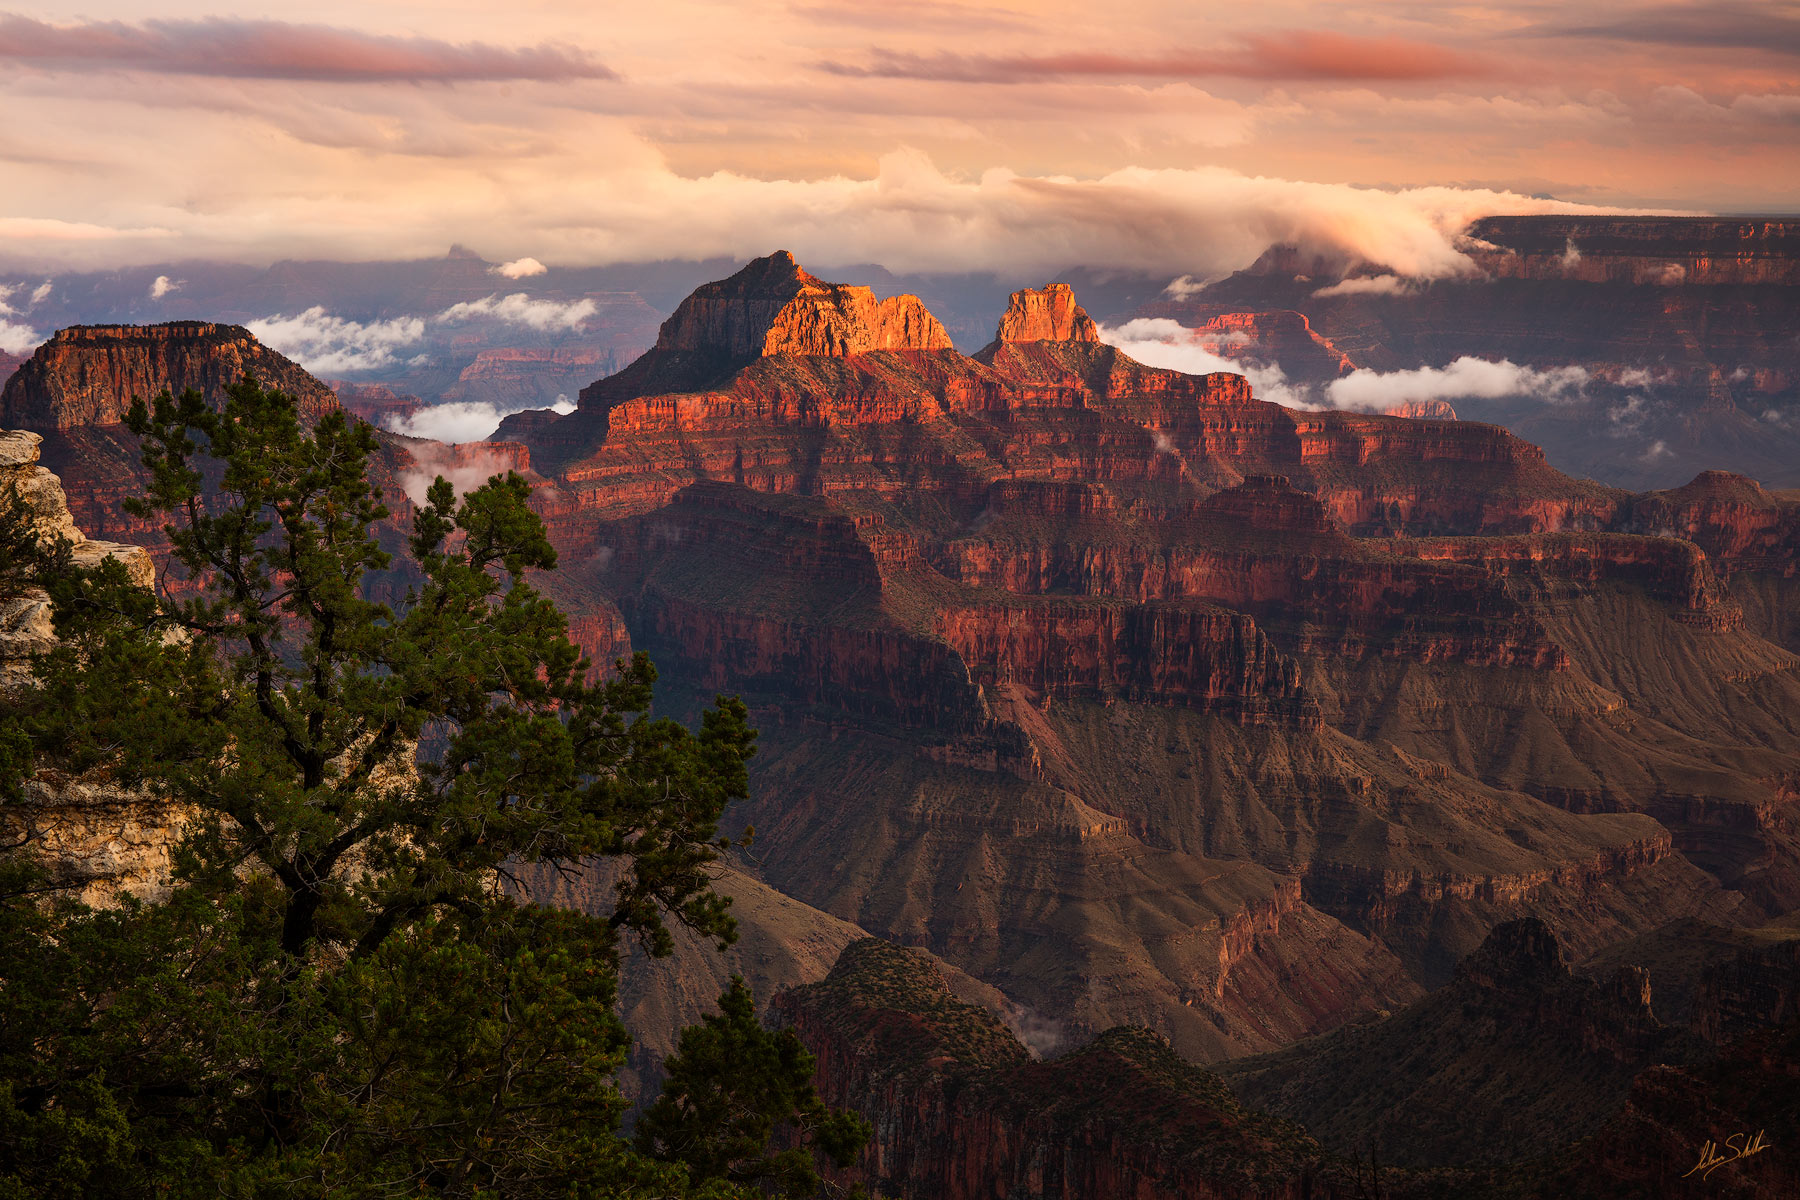 Arizona, Brahma Temple, Bright Angel, Bright Angel Point, Grand Canyon, Lodge, National Park, North Rim, Zoroaster Temple, Sunset, photo